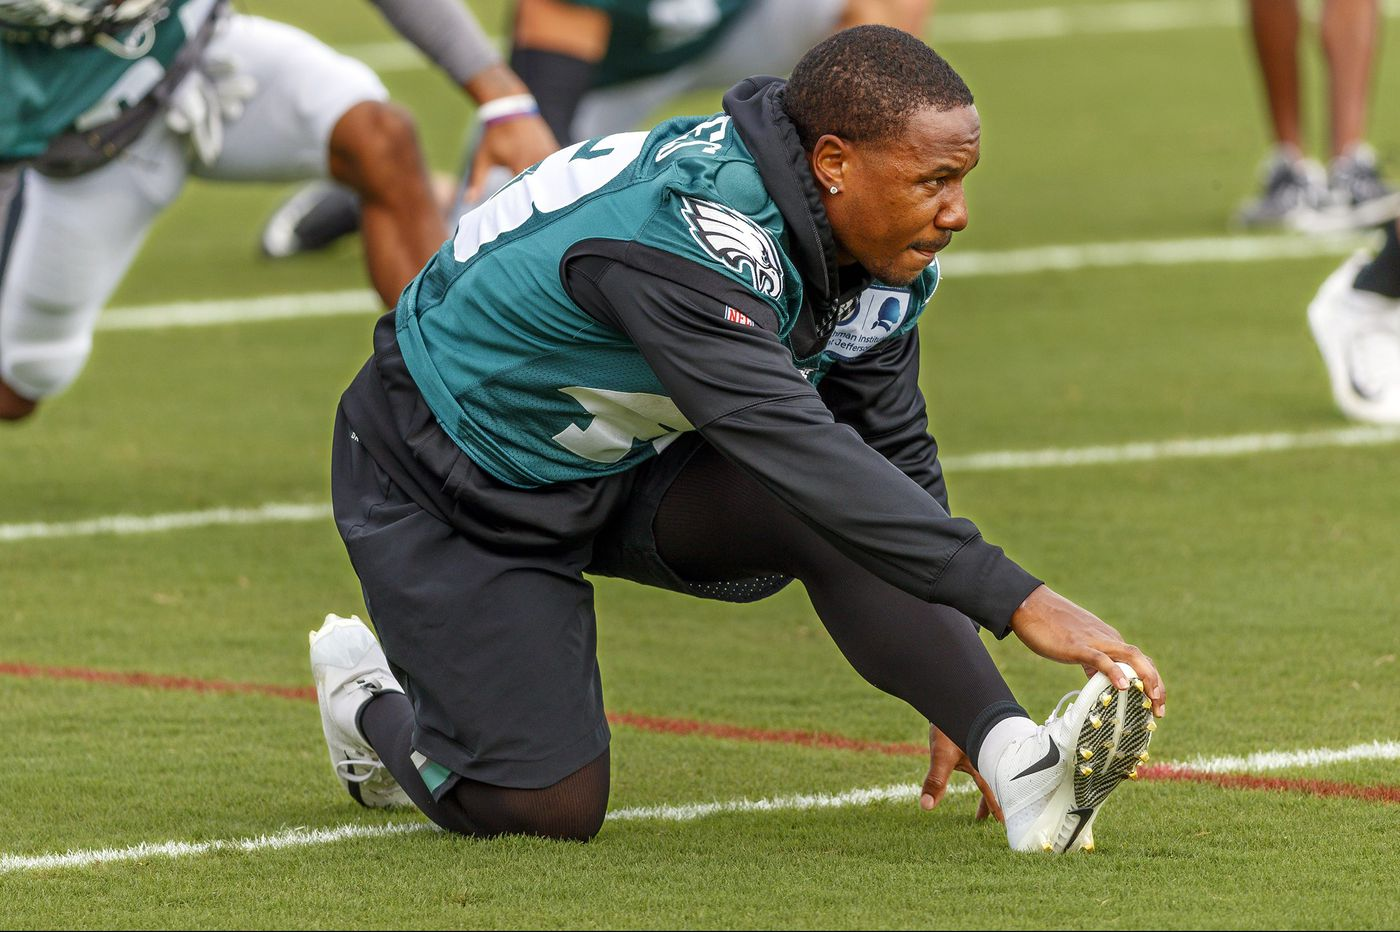 Eagles' Darren Sproles, Lane Johnson expected to play this week against Cowboys